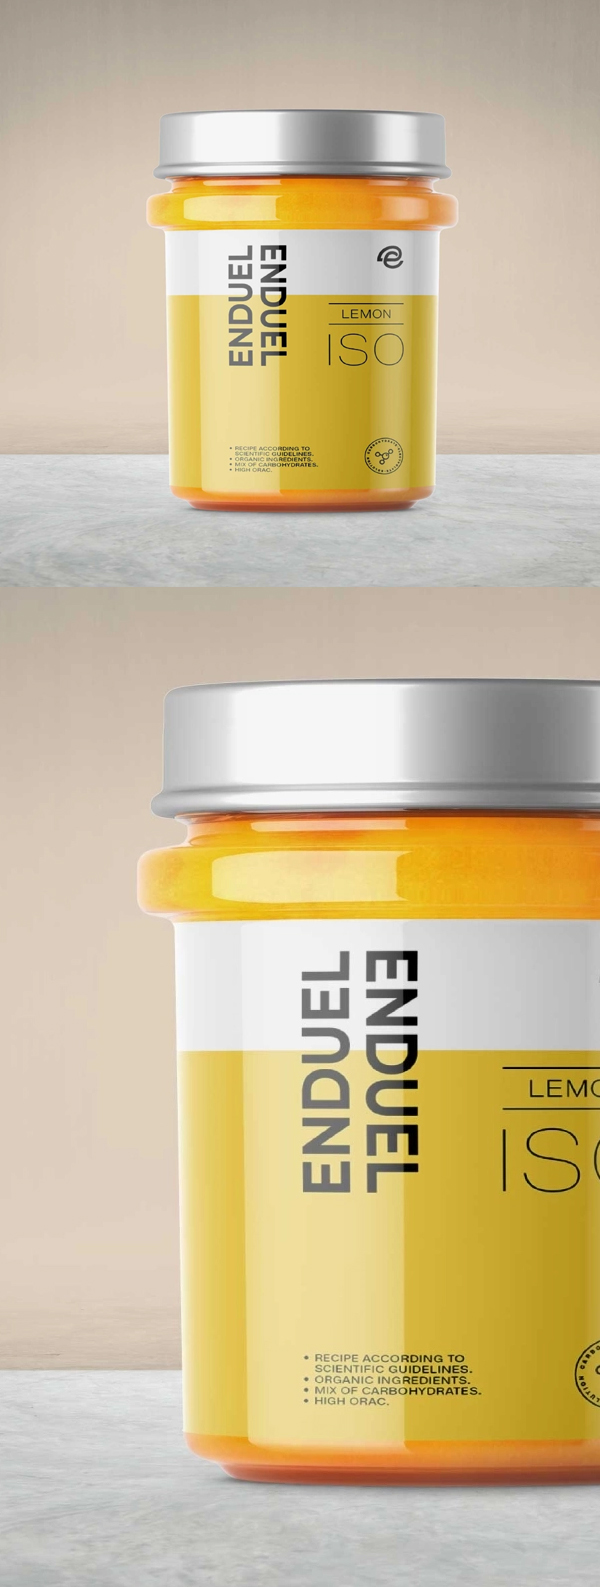 Free Lemon Cream Container Mockup